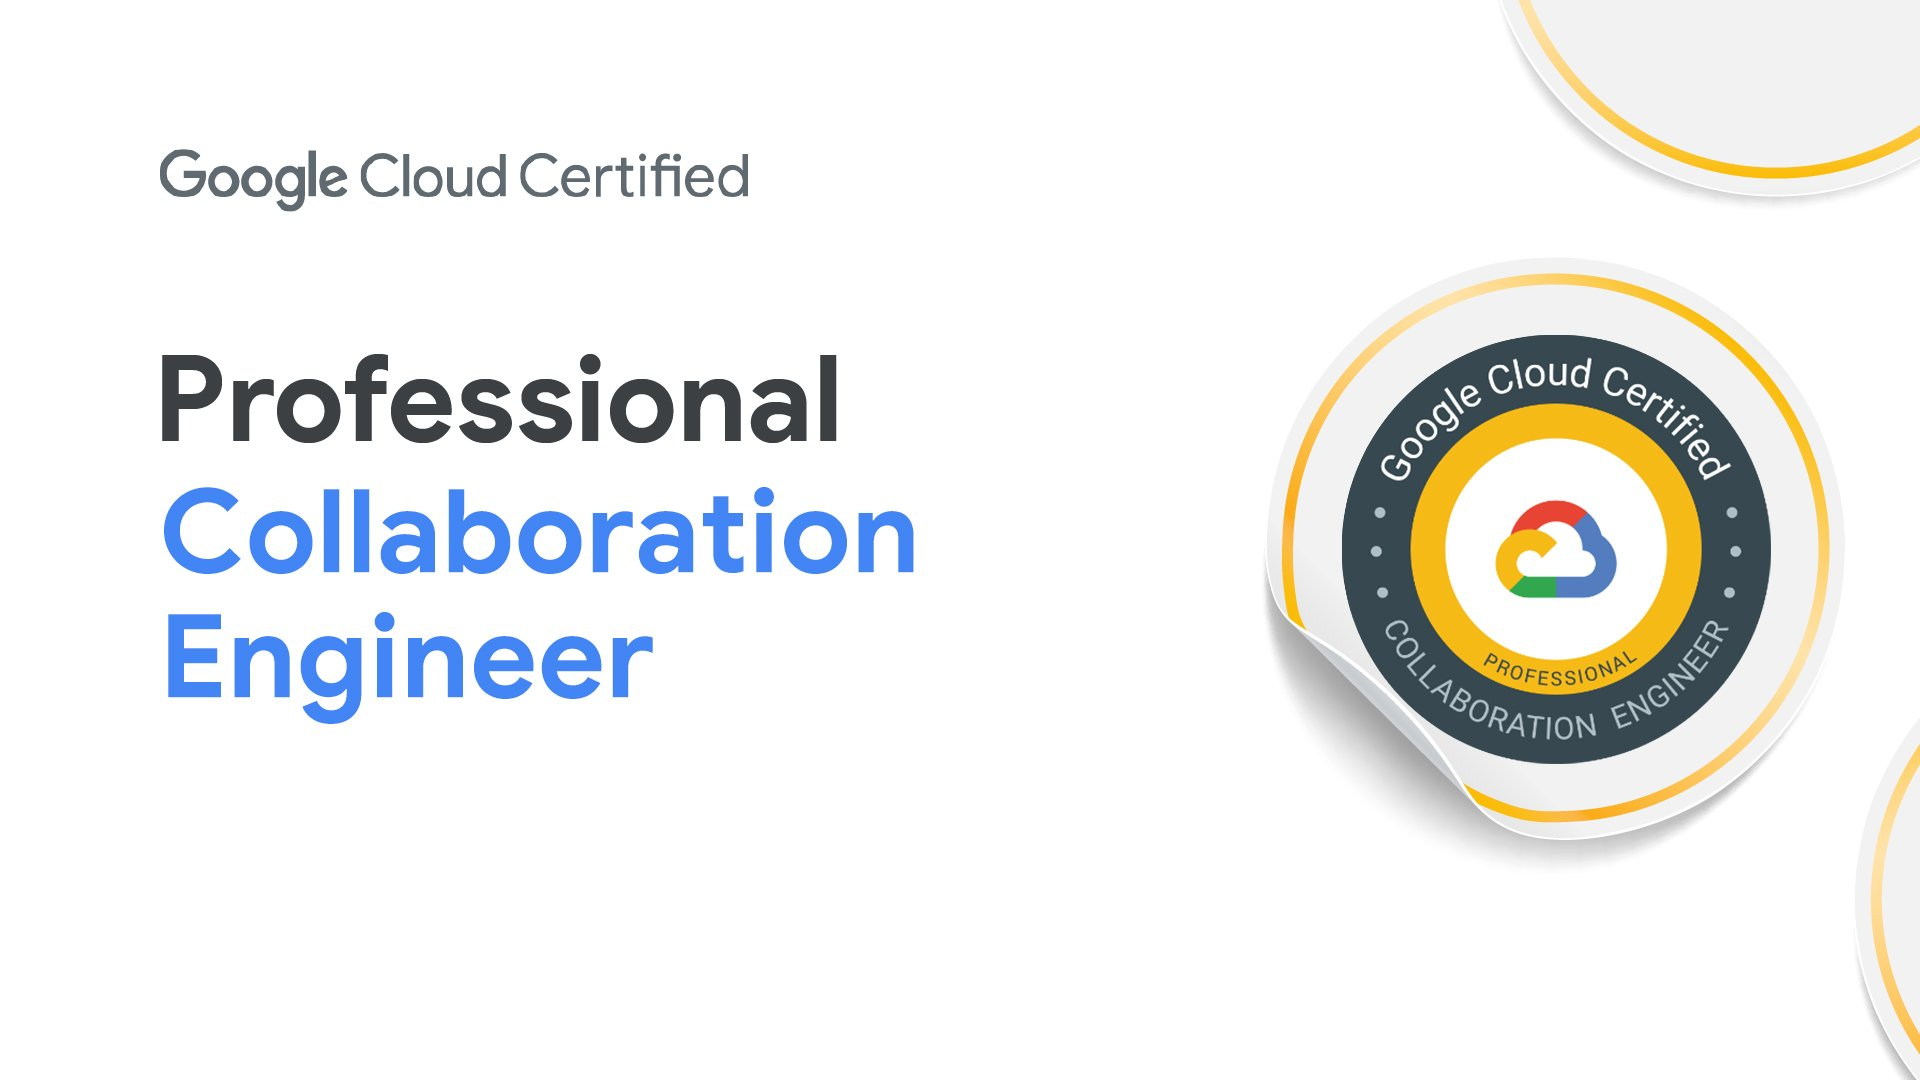 [GCP] Google Cloud Certified - Professional Collaboration Engineer